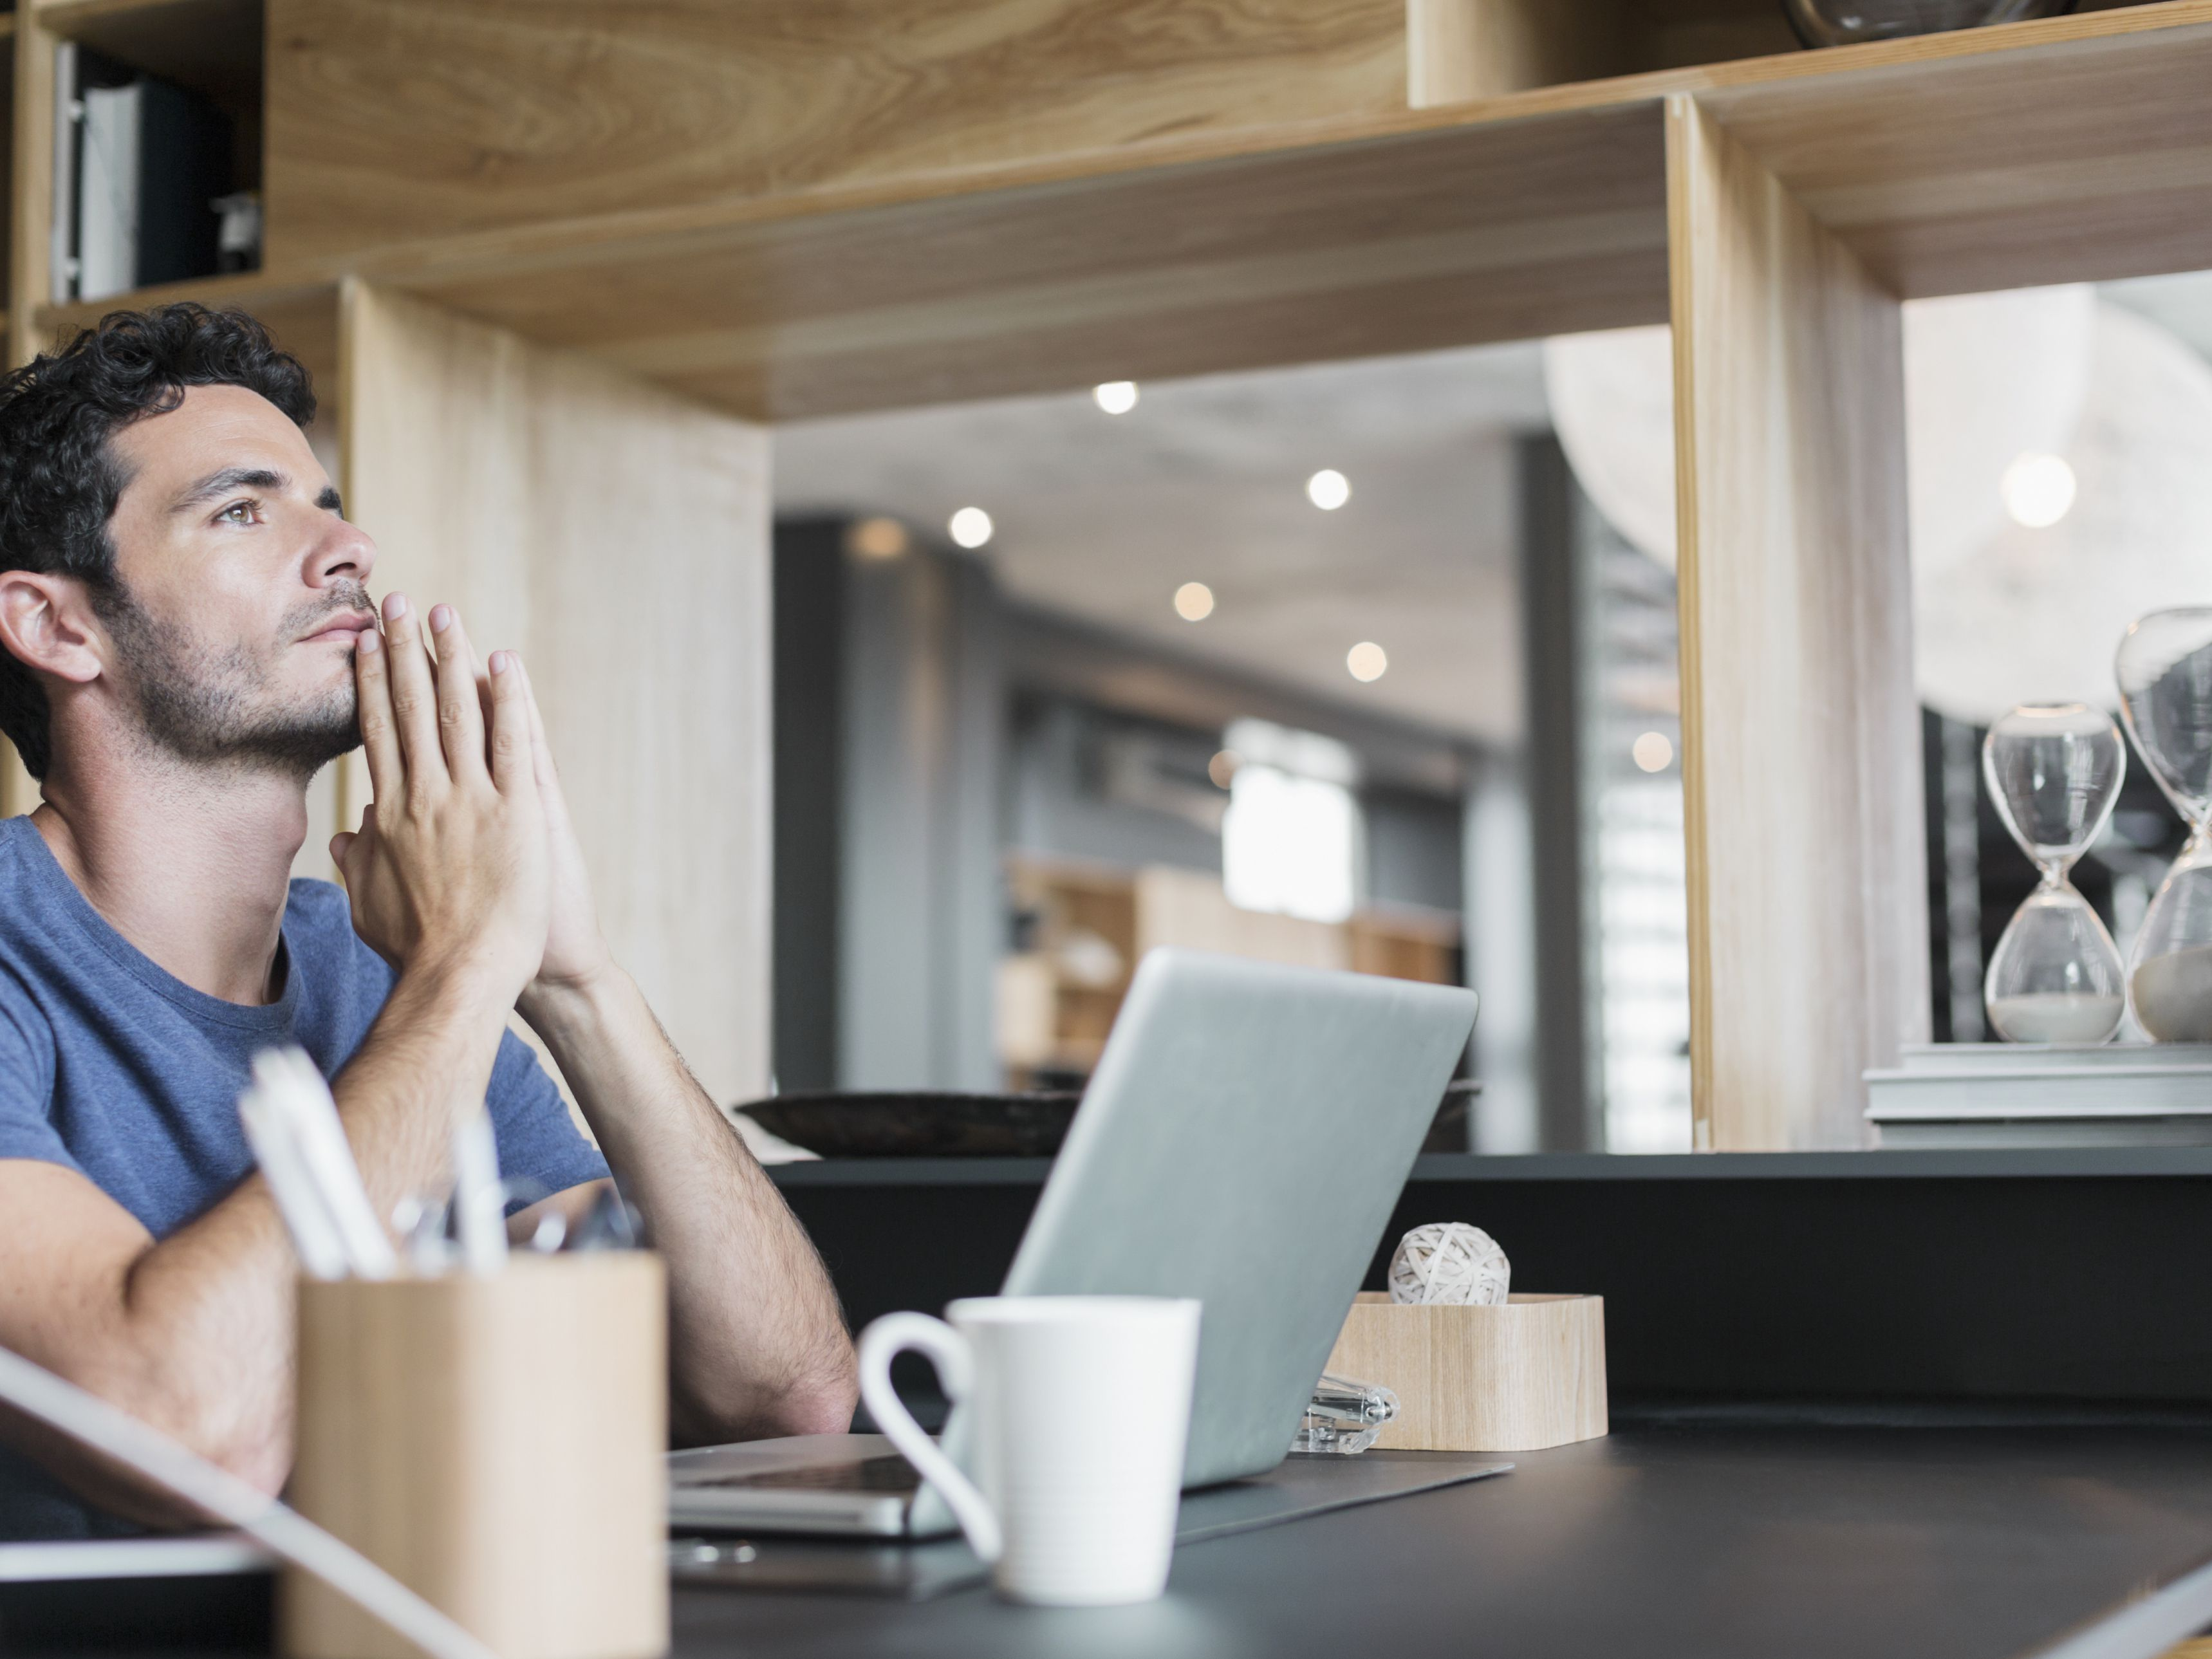 7 Tips on Handling Computer Stress and Frustration